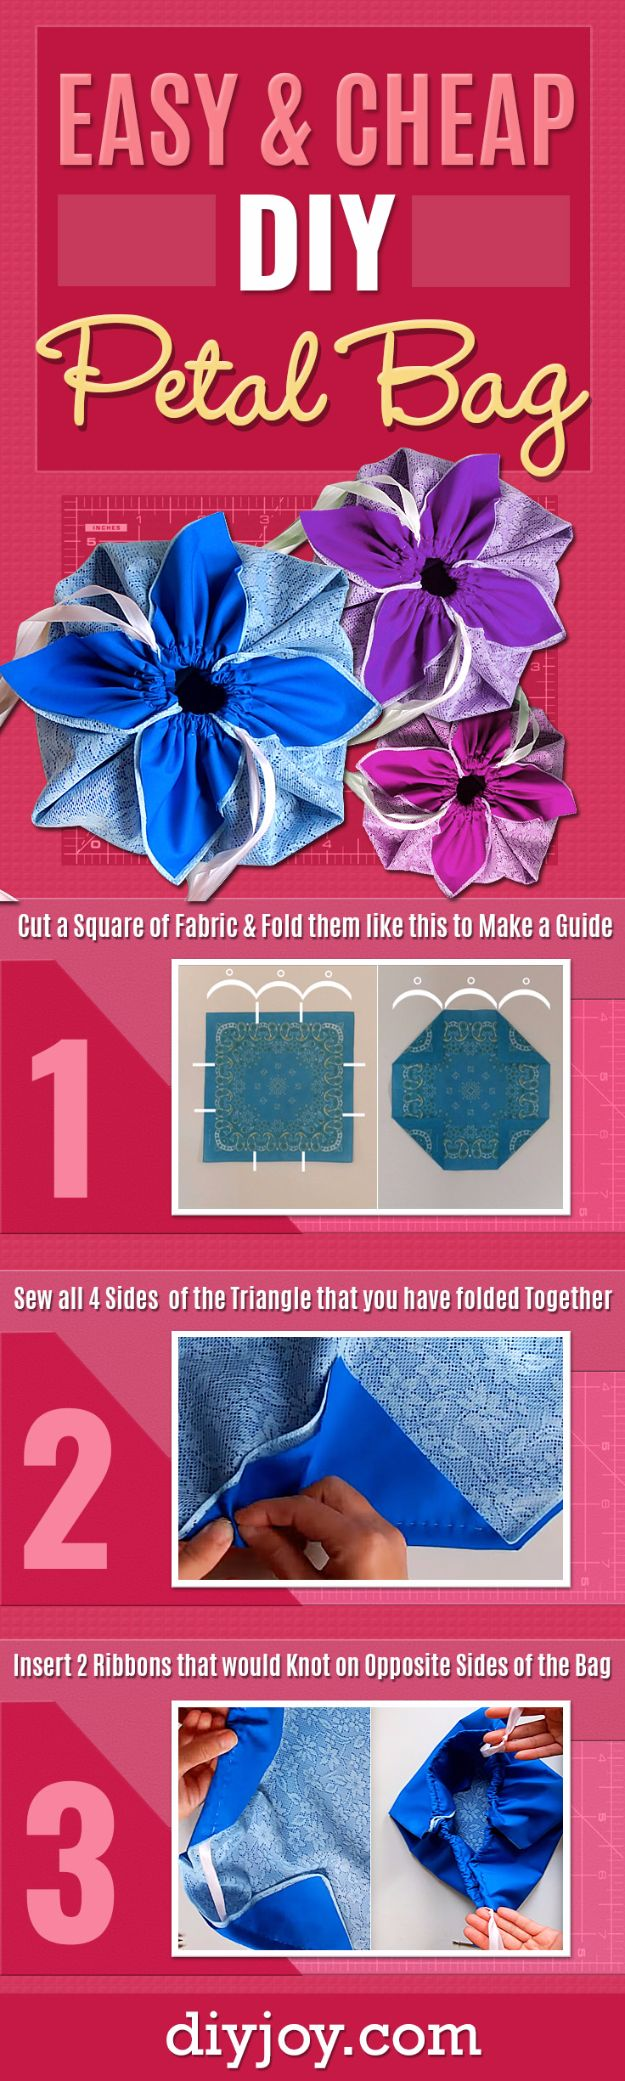 Cheap DIY Gifts and Inexpensive Homemade Christmas Gift Ideas for People on A Budget - DIY Petal Bag - To Make These Cool Presents Instead of Buying for the Holidays - Easy and Low Cost Gifts for Mom, Dad, Friends and Family - Quick Dollar Store Crafts and Projects for Xmas Gift Giving Parties - Step by Step Tutorials and Instructions http://diyjoy.com/cheap-holiday-gift-ideas-to-make